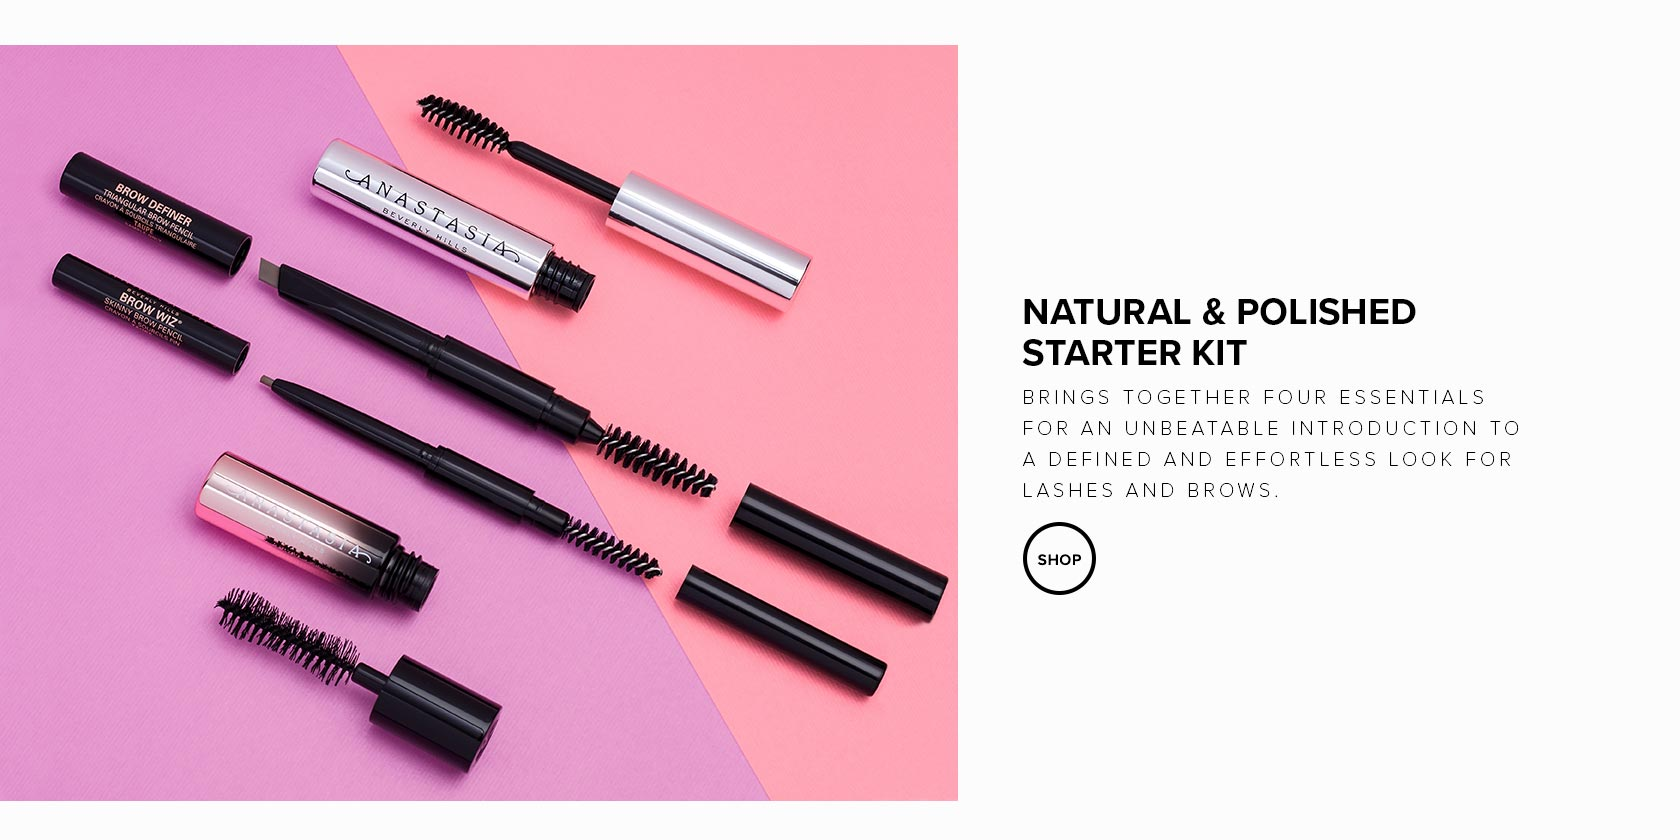 Natural and Polished Starter Kit  brings four essentials for an unbeatable introduction to a defined and effortless look for lashes and brows